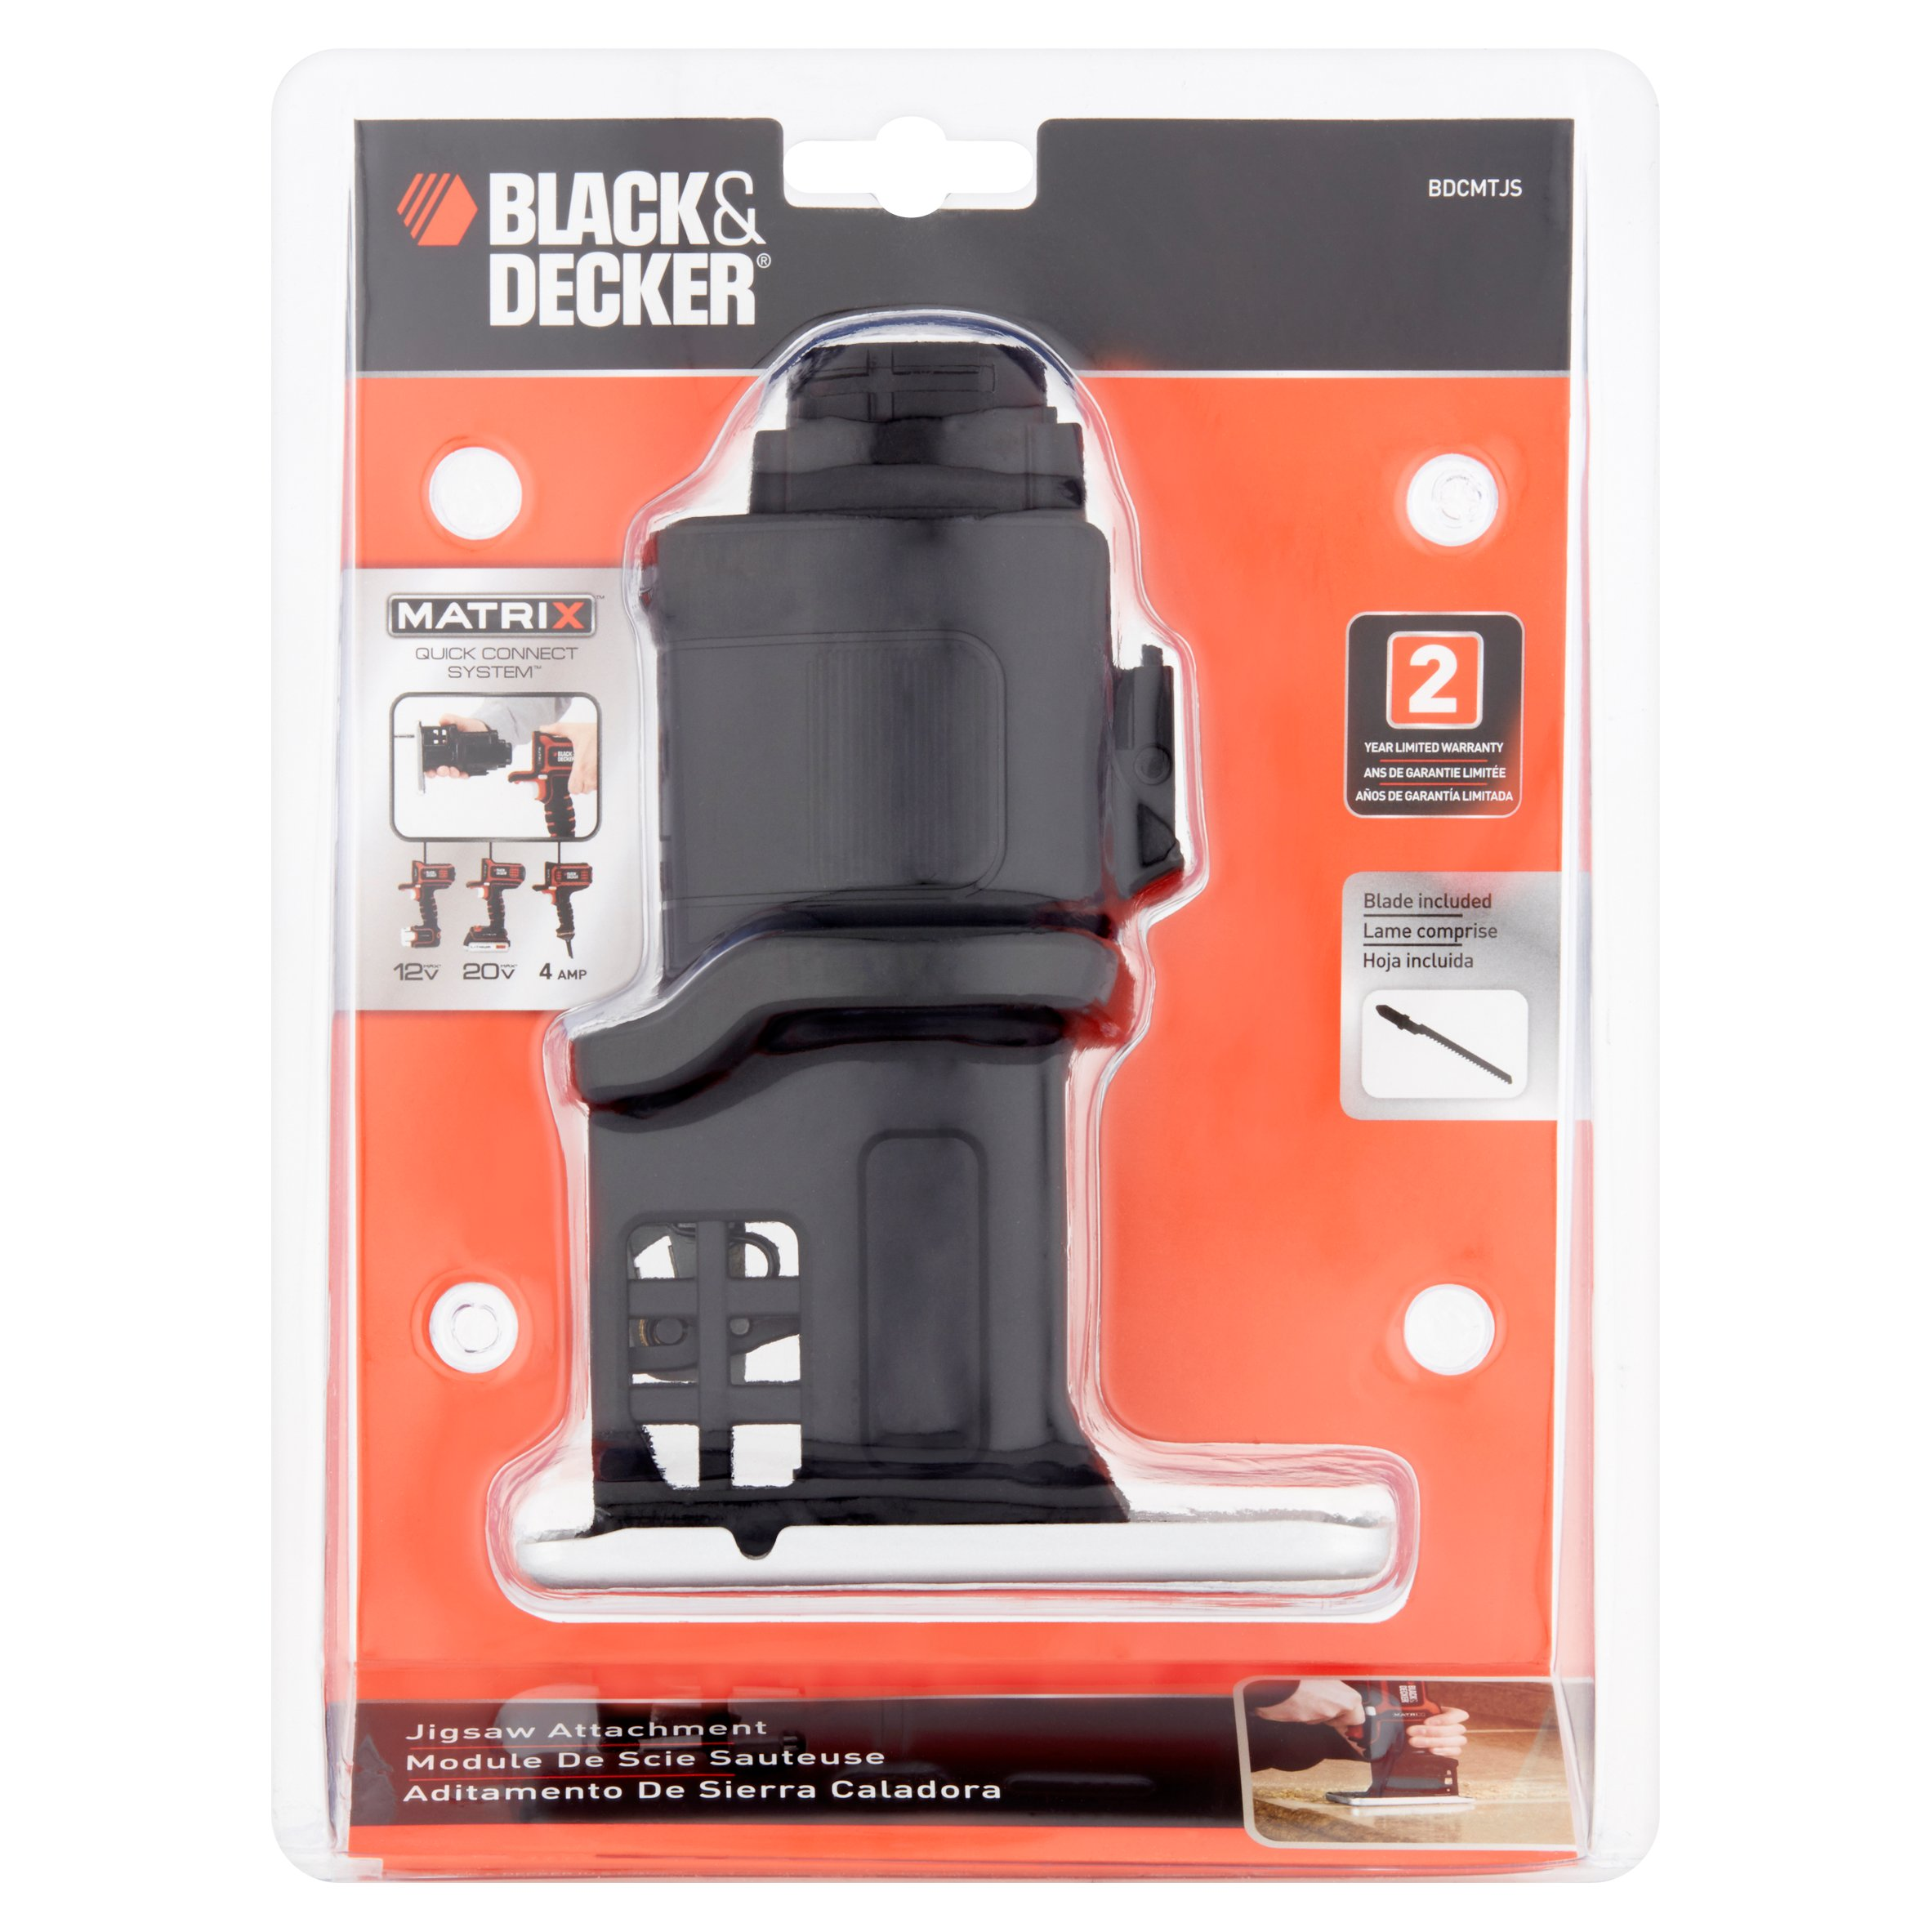 Black & Decker BDCMTJS Matrix Quick-Connect Jigsaw Attachment by Black & Decker (U.S.) Inc.